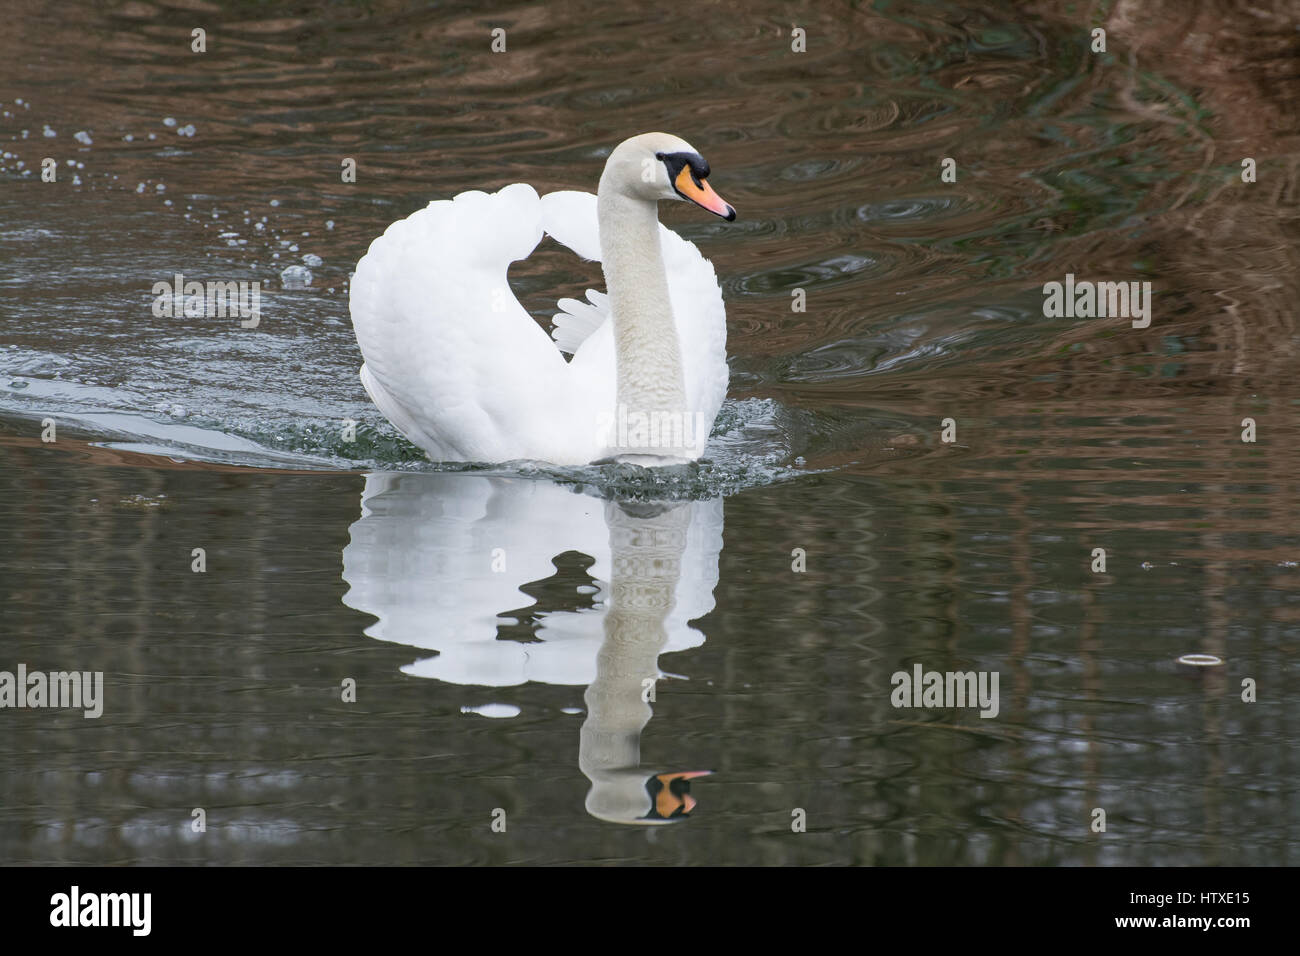 Mute swan (Cygnus olor) swimming on canal Stock Photo